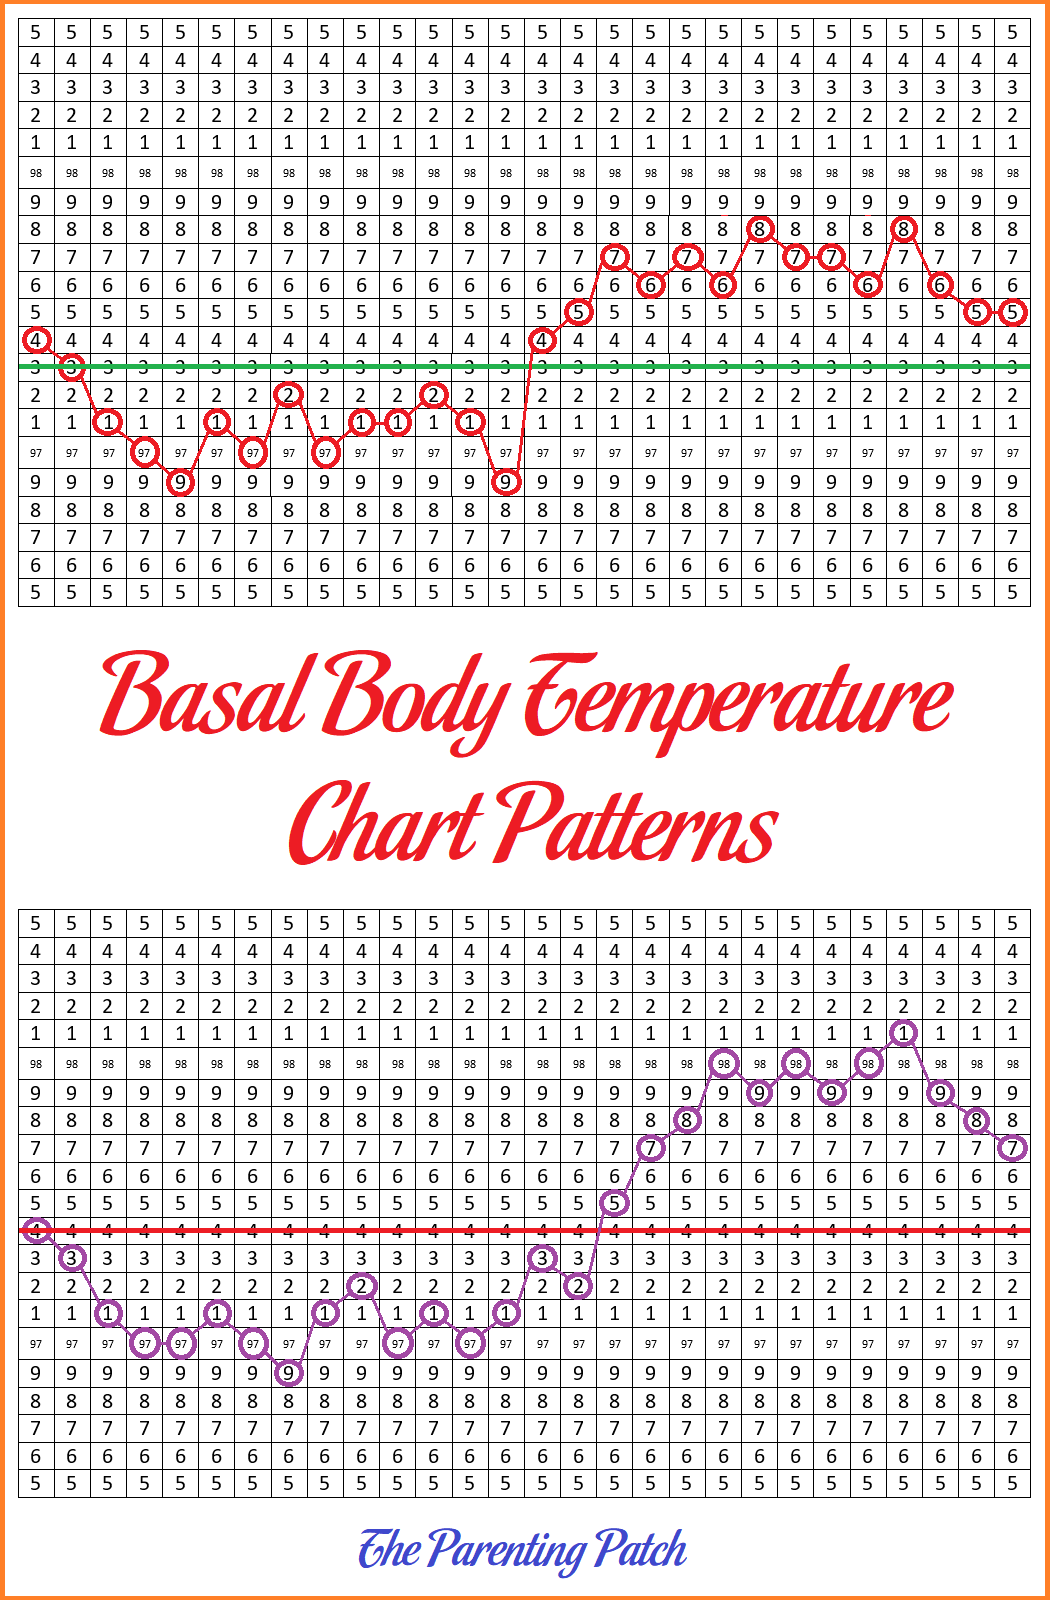 photo relating to Basal Body Temp Chart Printable identified as Basal Human body Weather Chart Designs Parenting Patch